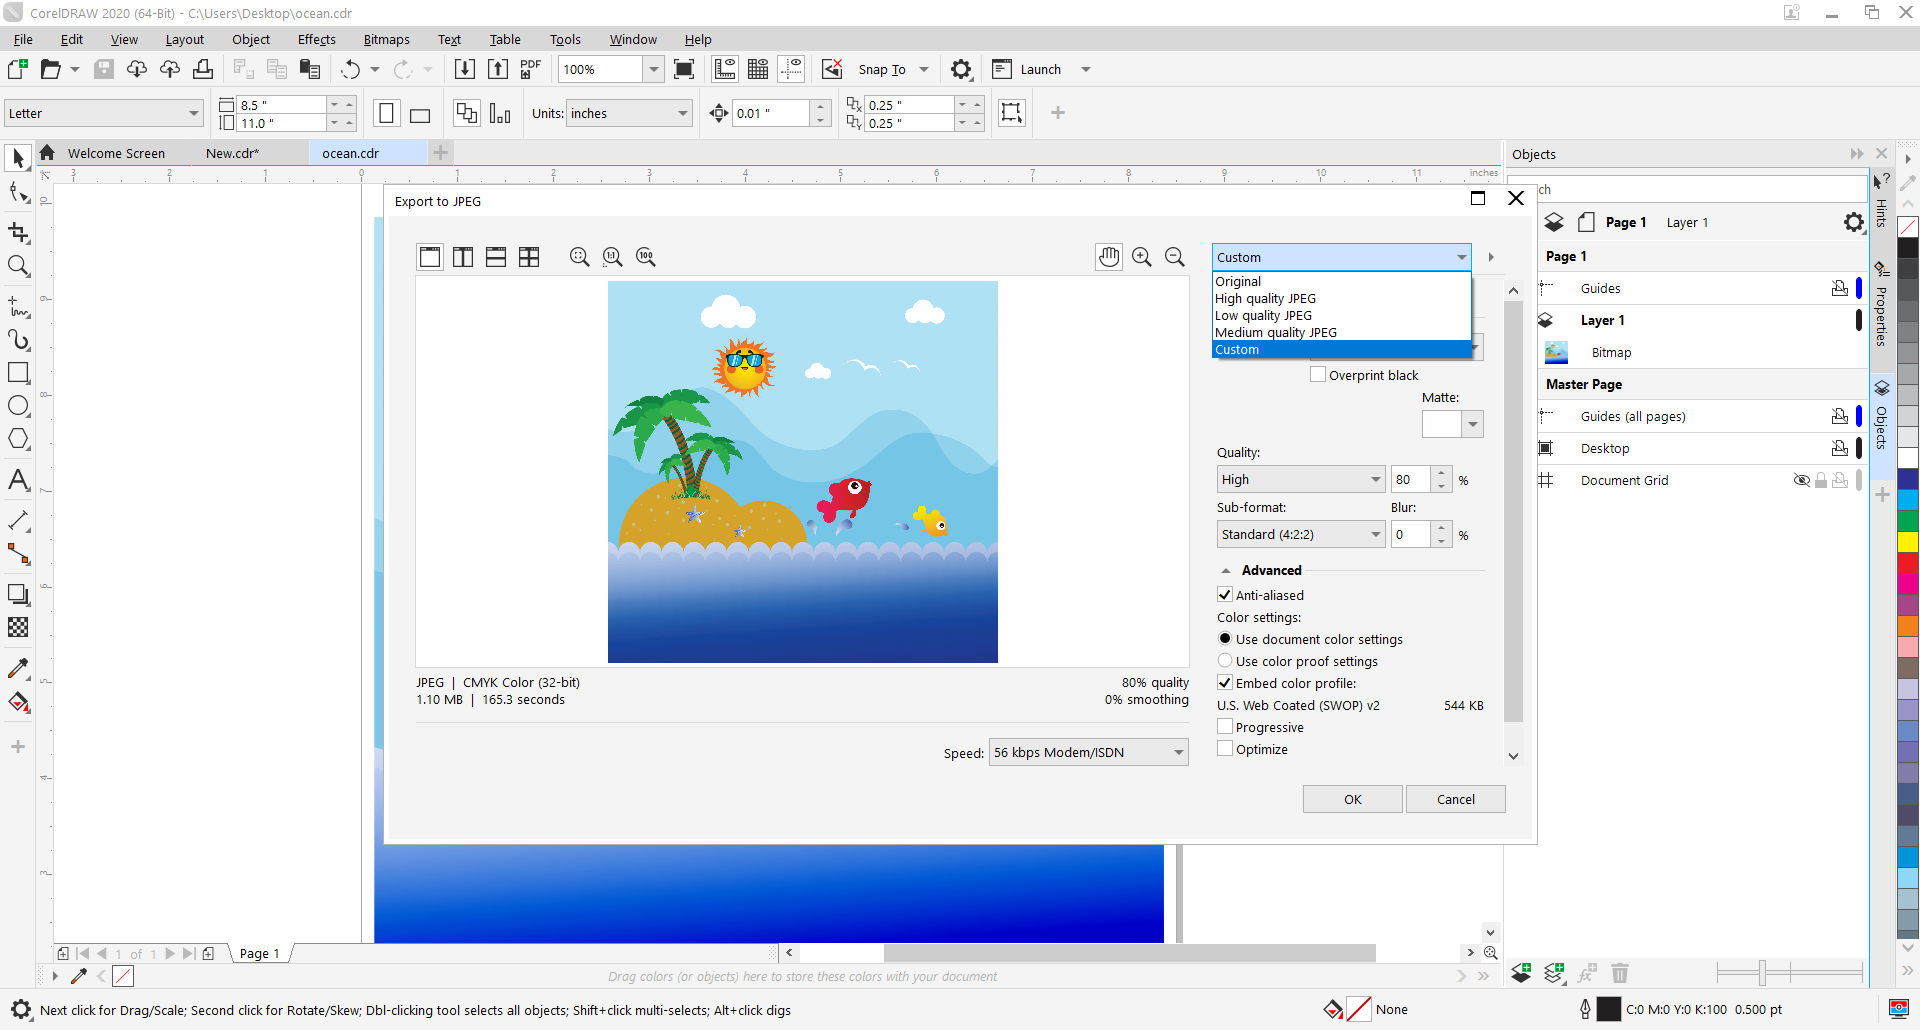 How to use CorelDRAW as a CDR file converter?